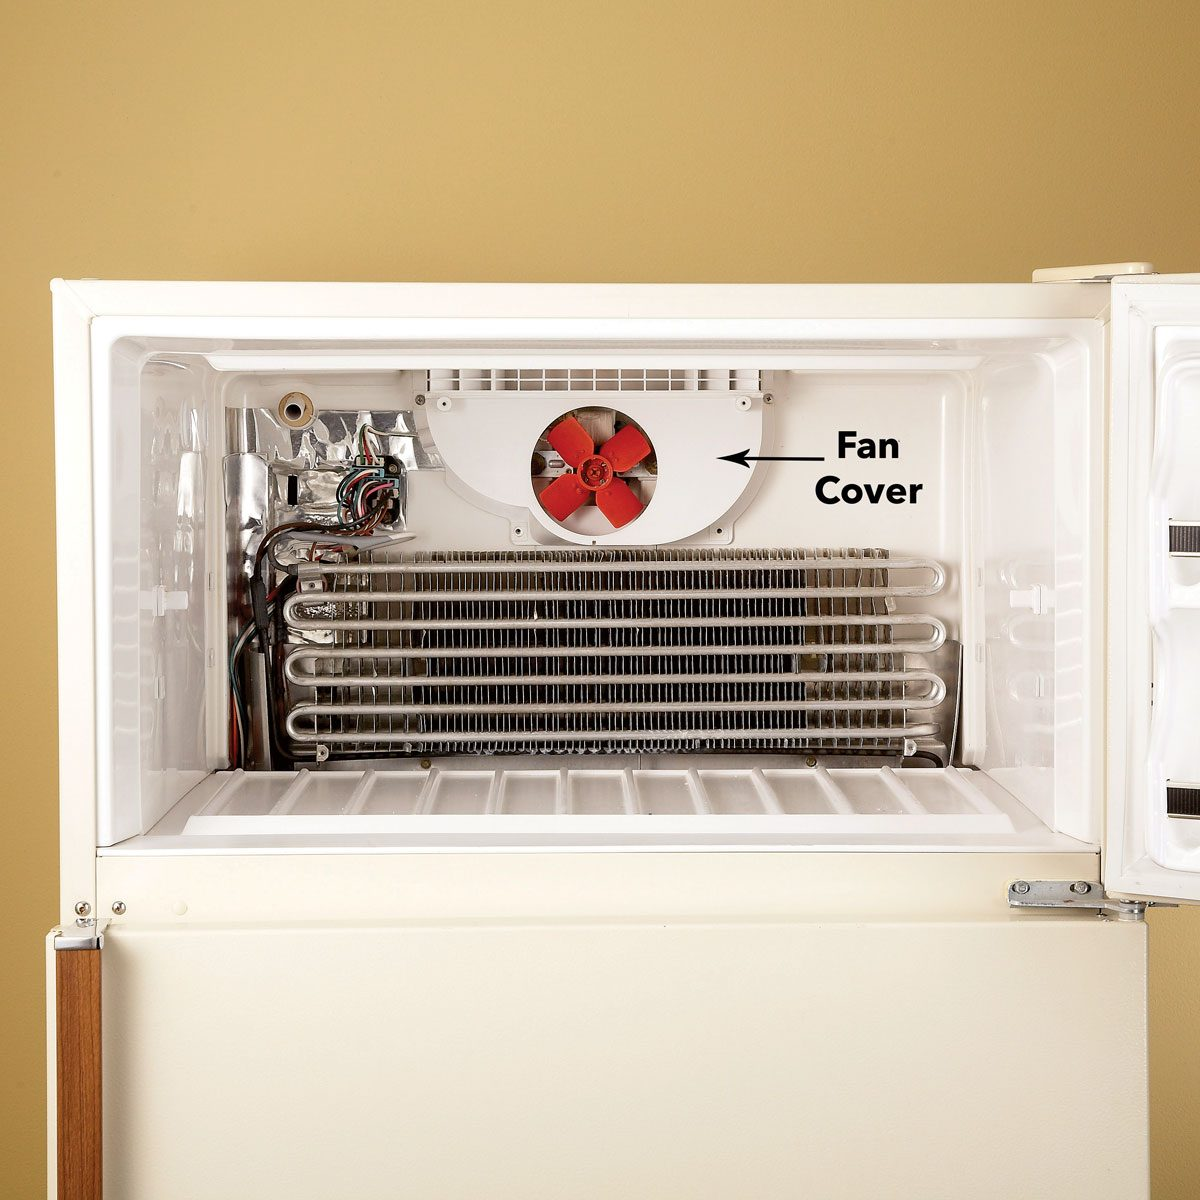 Refrigerator Not Cooling: Fix Refrigerator Problems | The